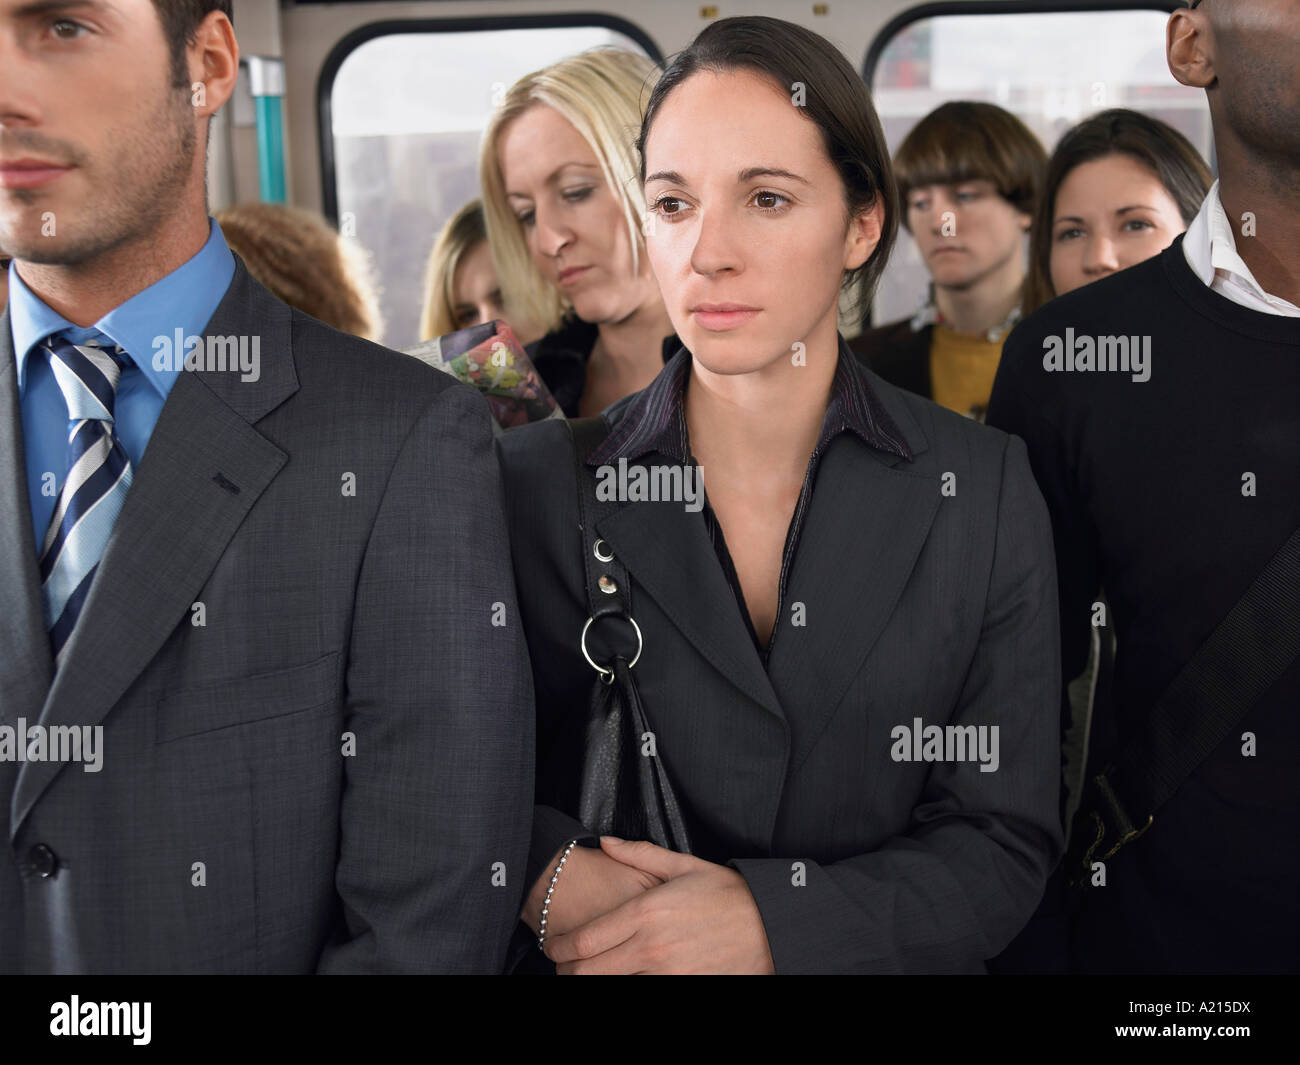 Commuters standing on a Train - Stock Image